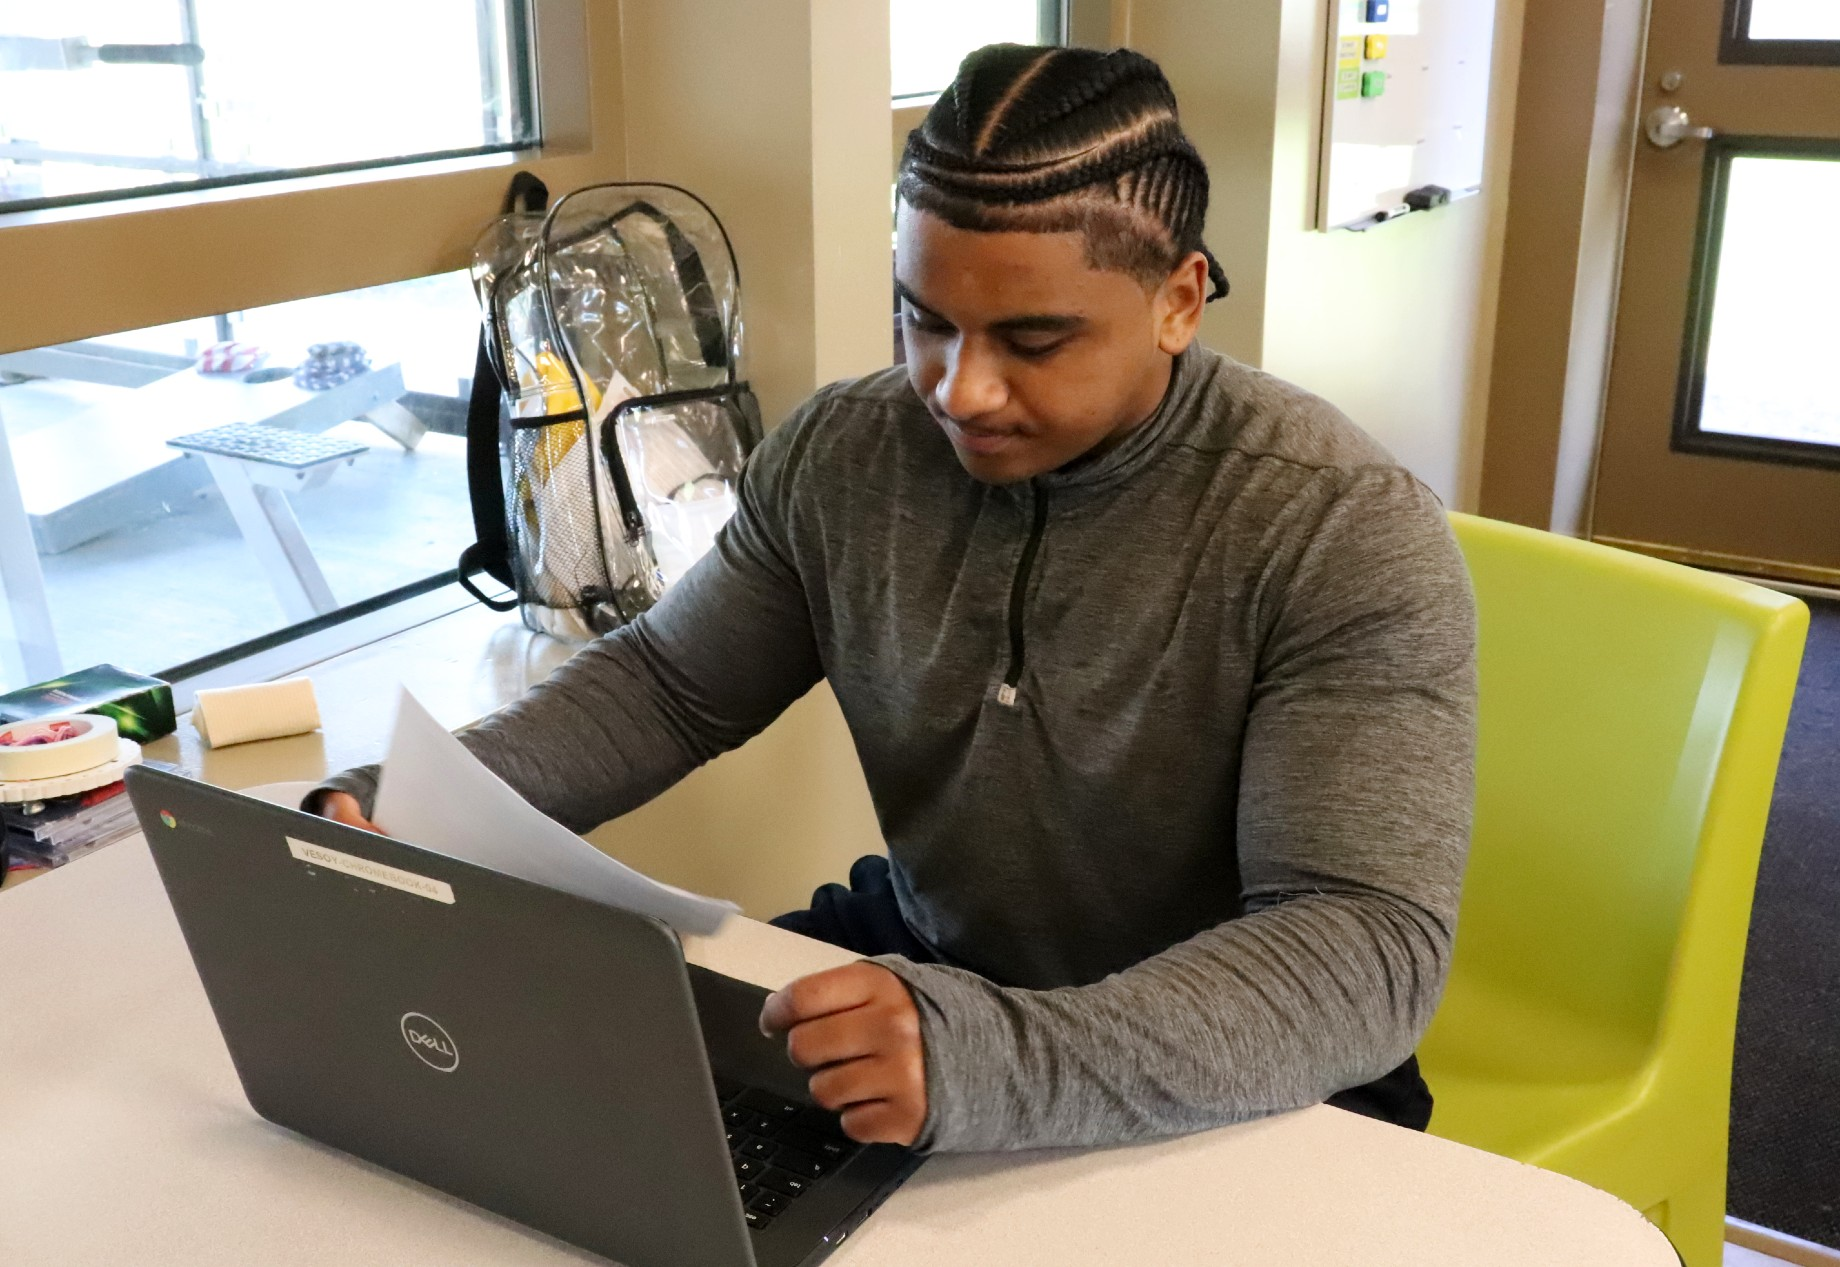 a young men works at a laptop on a table